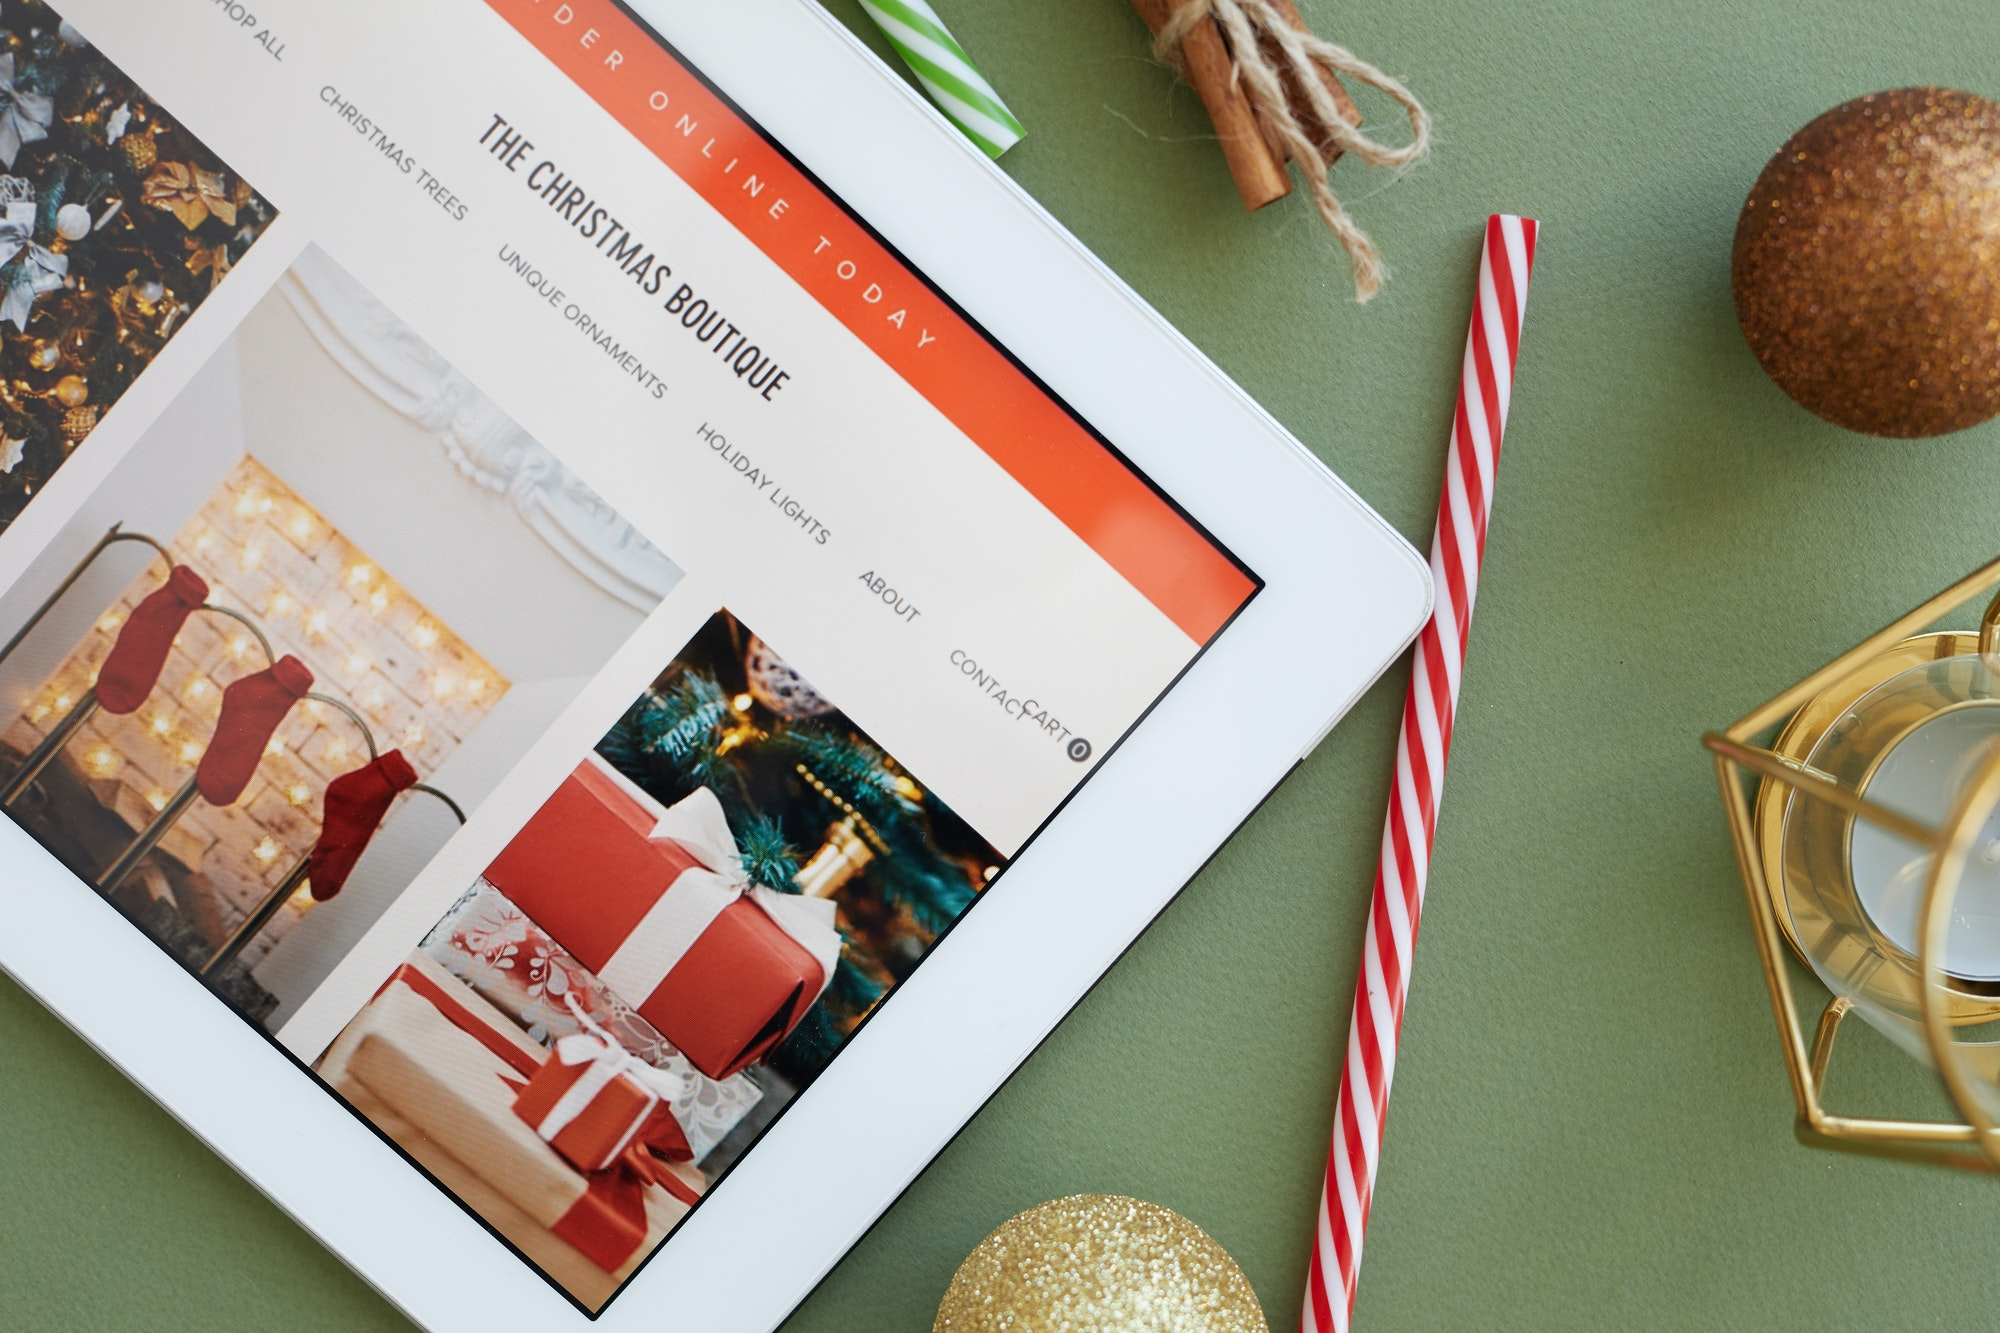 Online store of Christmas goods